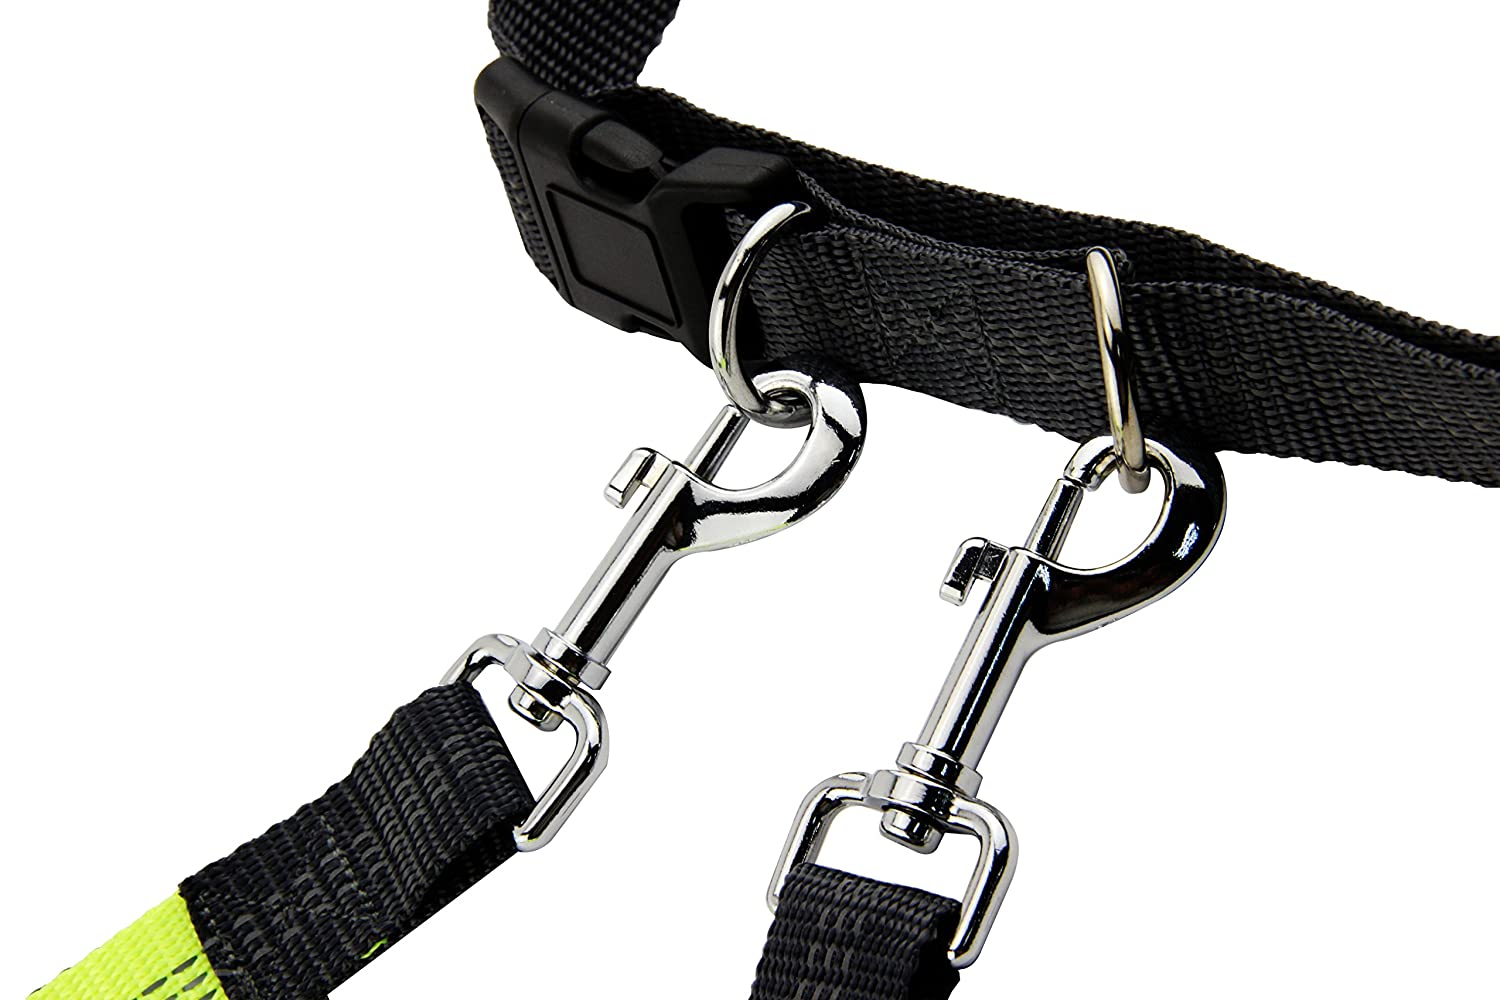 Hiking /& Biking Walking Leadrise Hands Free Dog Leash for Running Reflective Stitching Durable Dual-Handle Bungee Leash Adjustable Waist Belt Fit up to 110 lbs Large and Medium Dogs